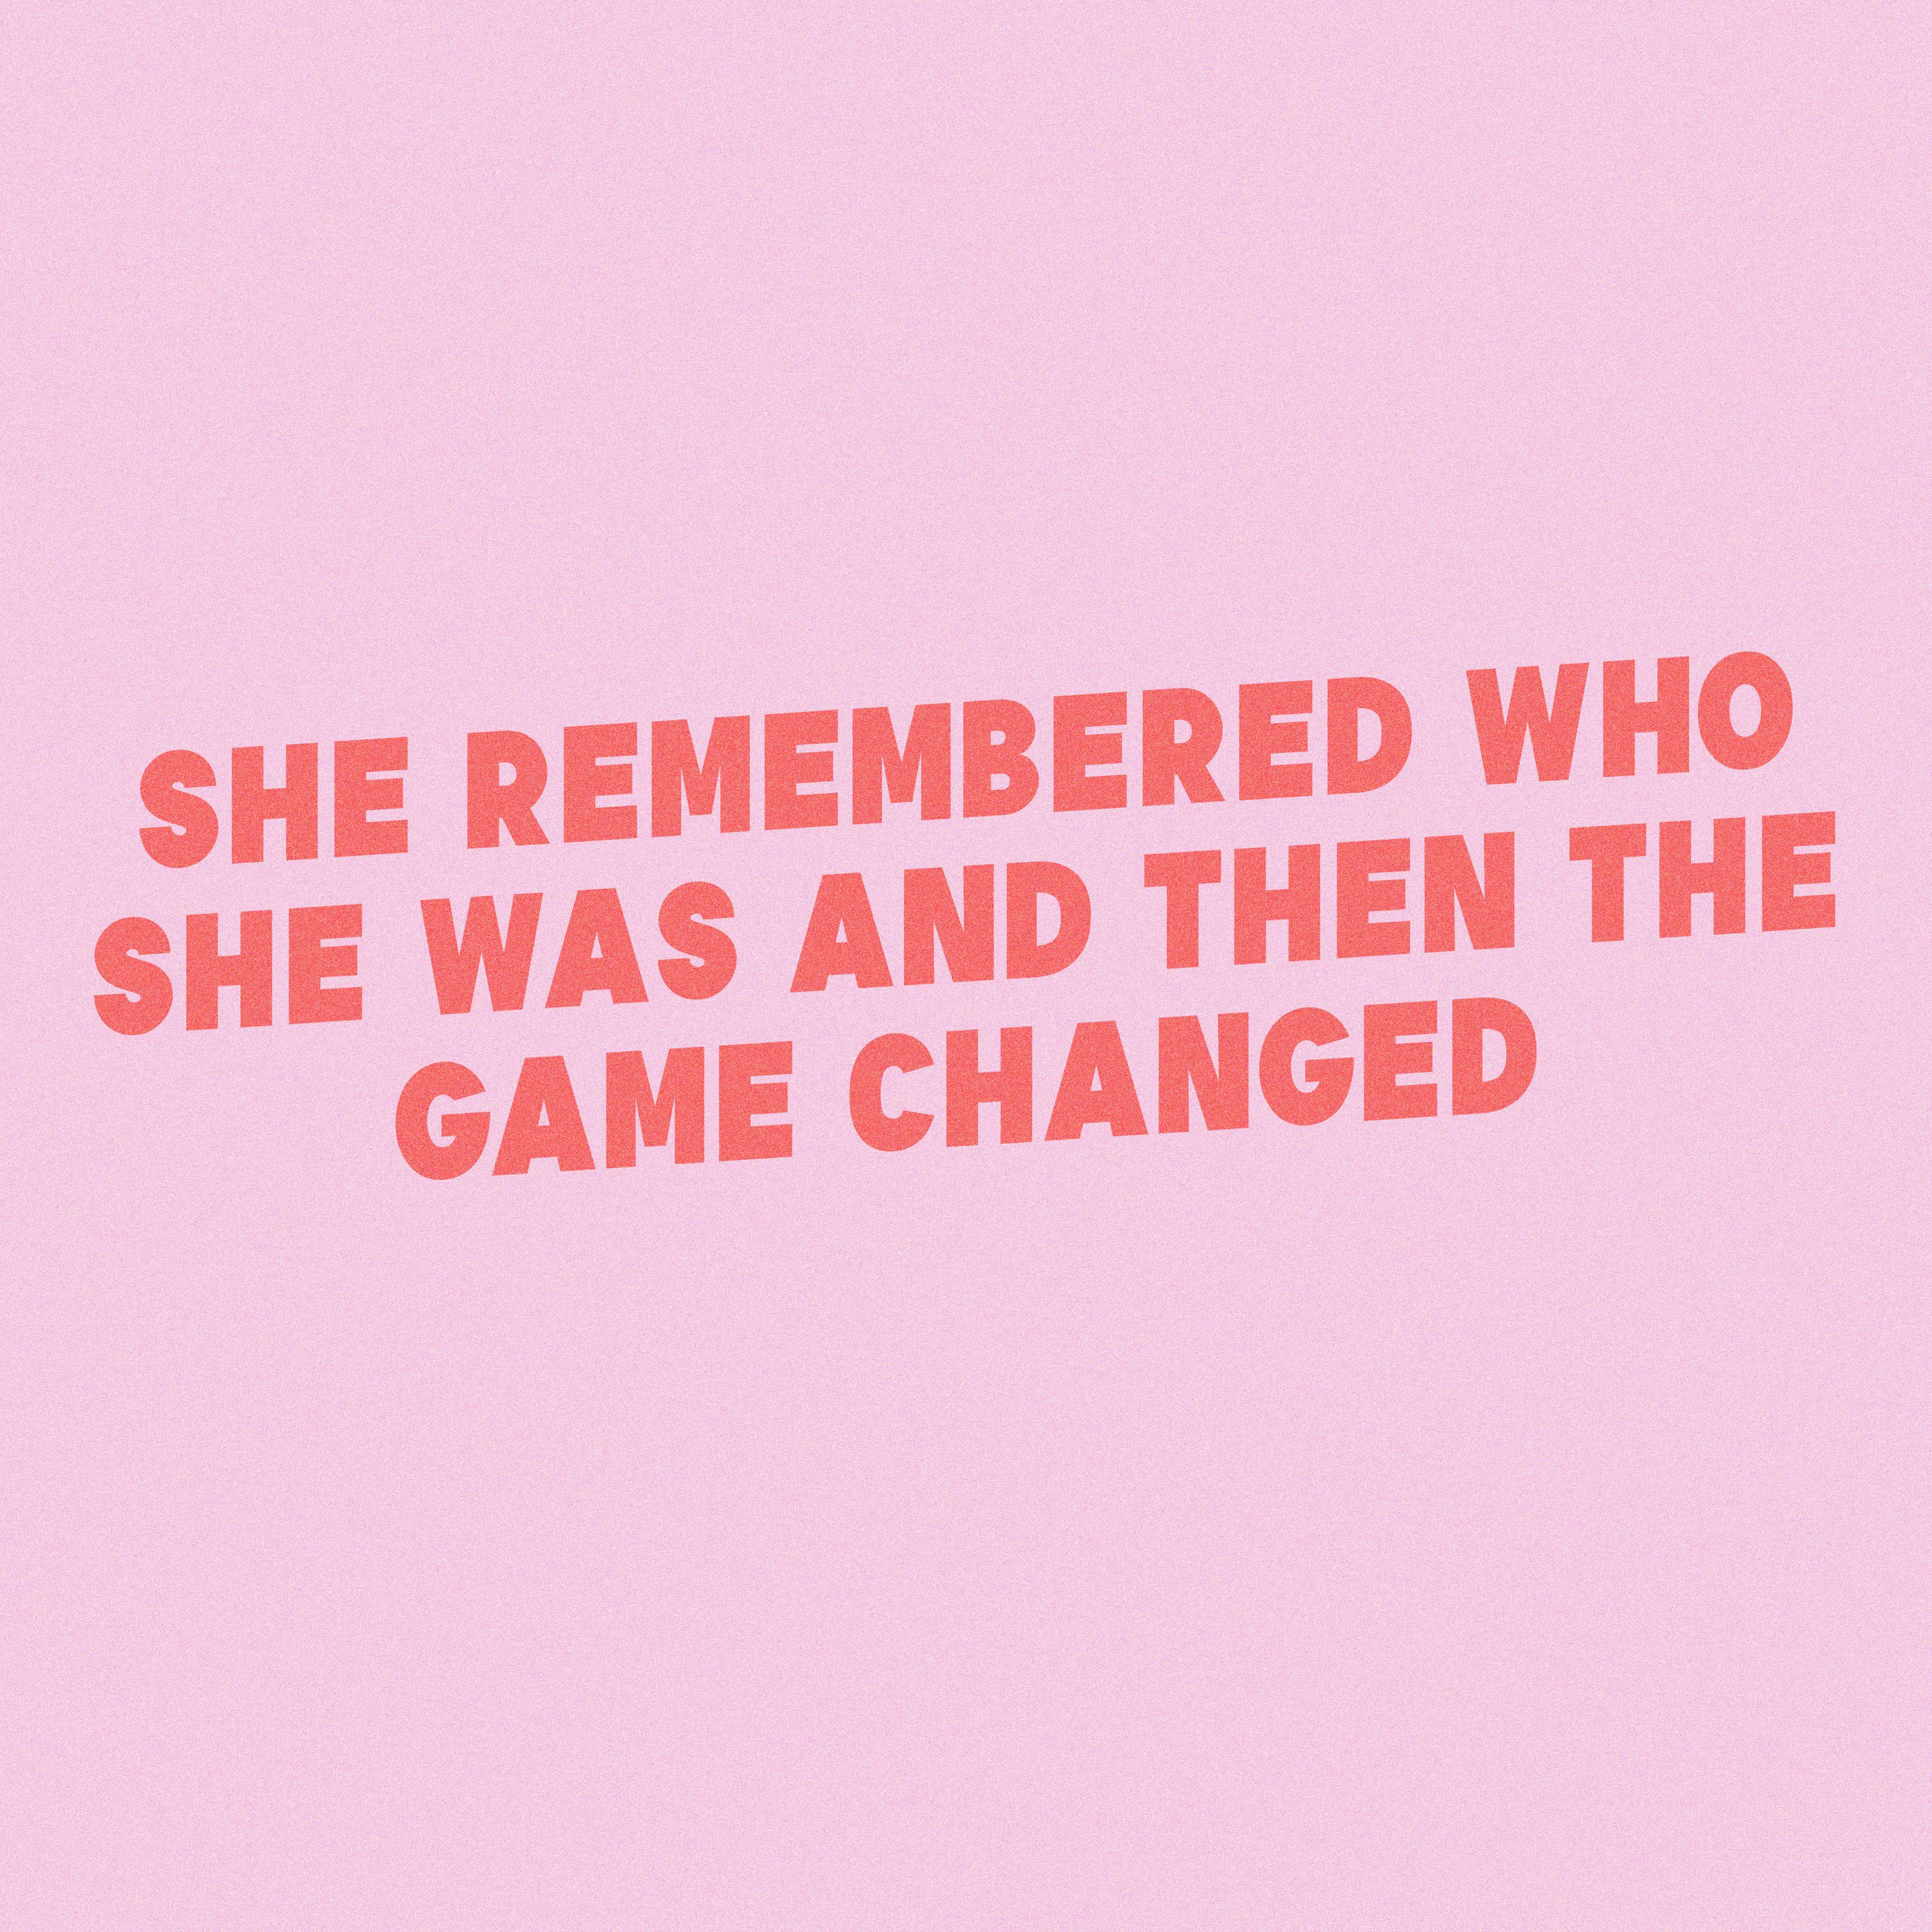 She Remembered Who She Was And Then The Game Changed By Typutopia